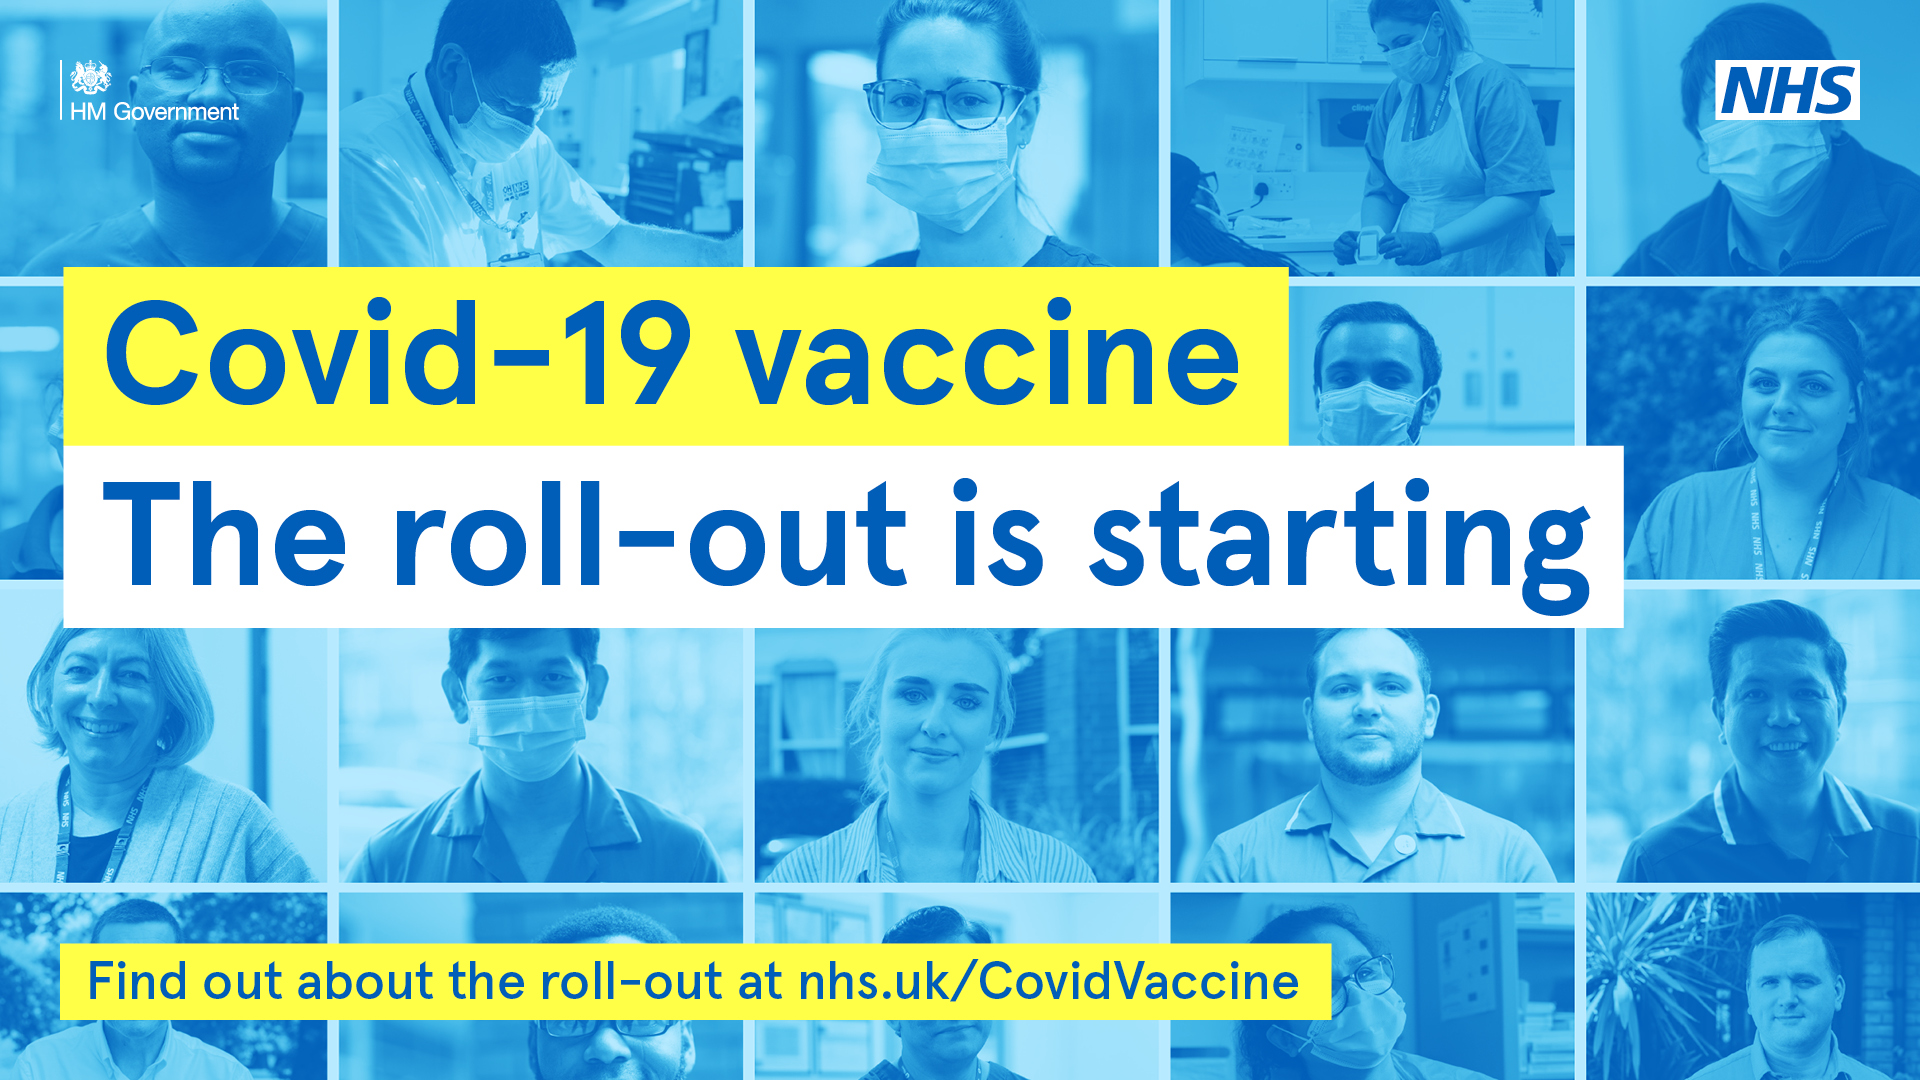 Important information about the NHS Covid-19 vaccination programme